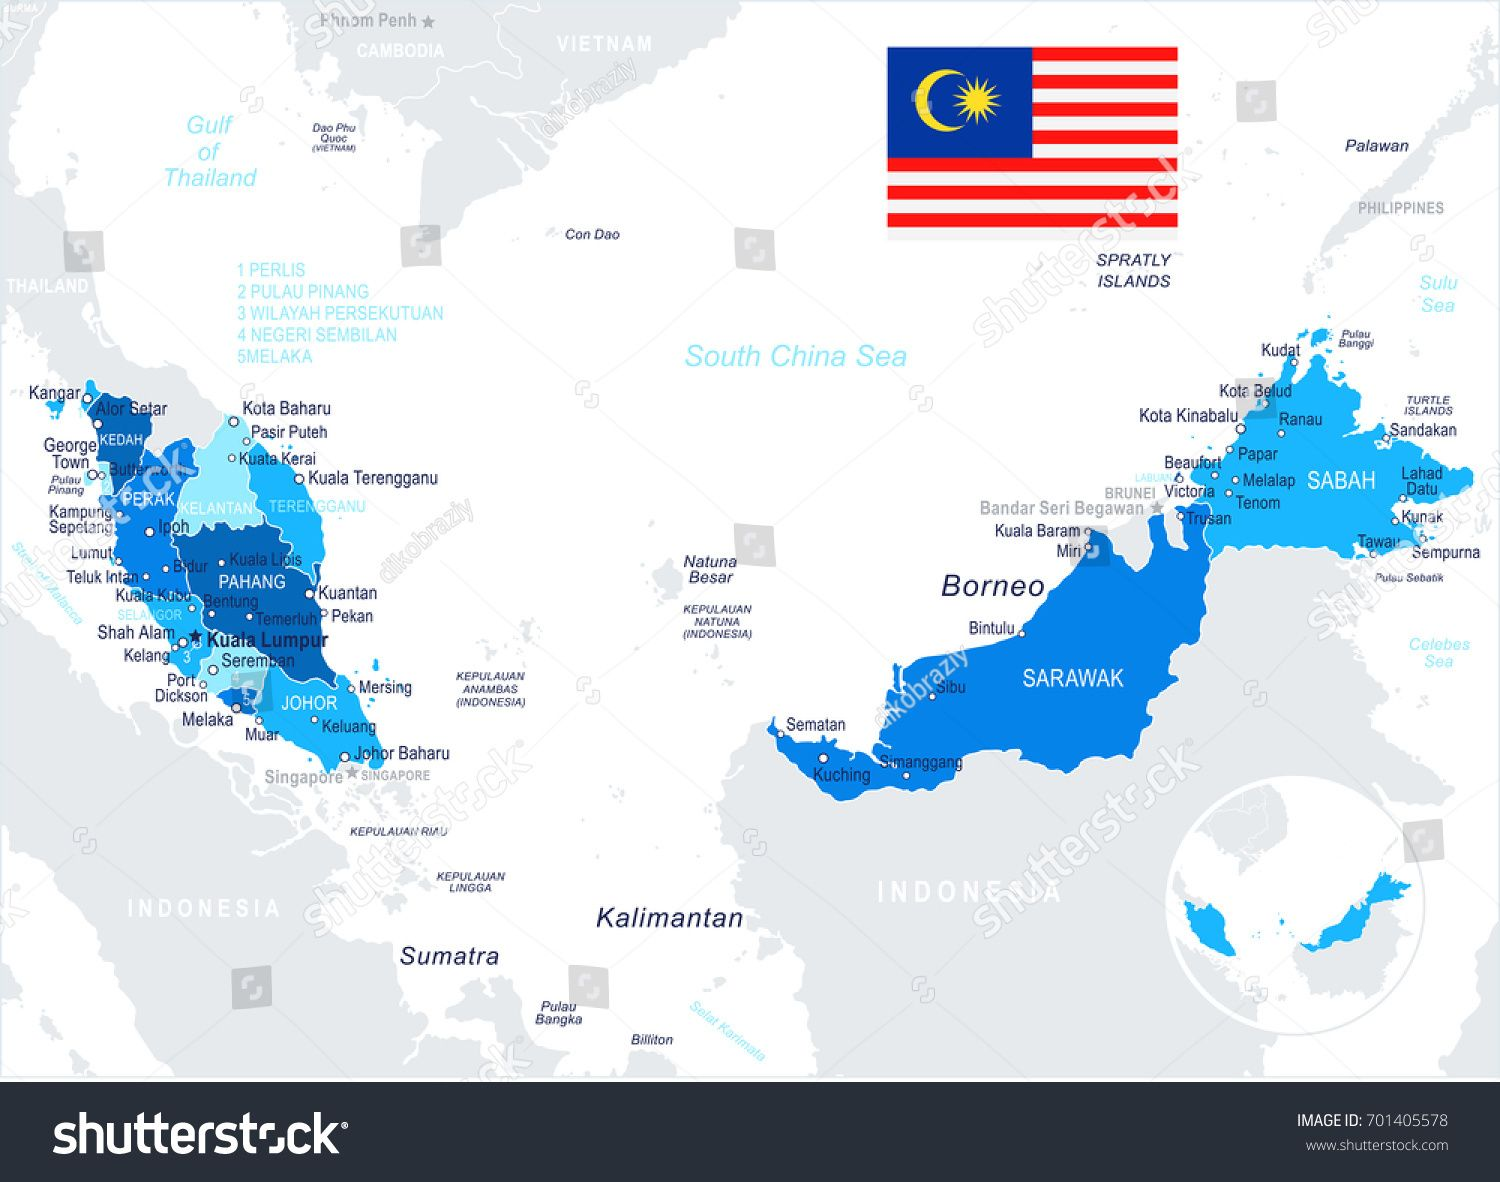 Malaysia Map And Flag Vector Illustration Sponsored Map Malaysia Flag Illustration Flag Vector Vector Illustration Illustration